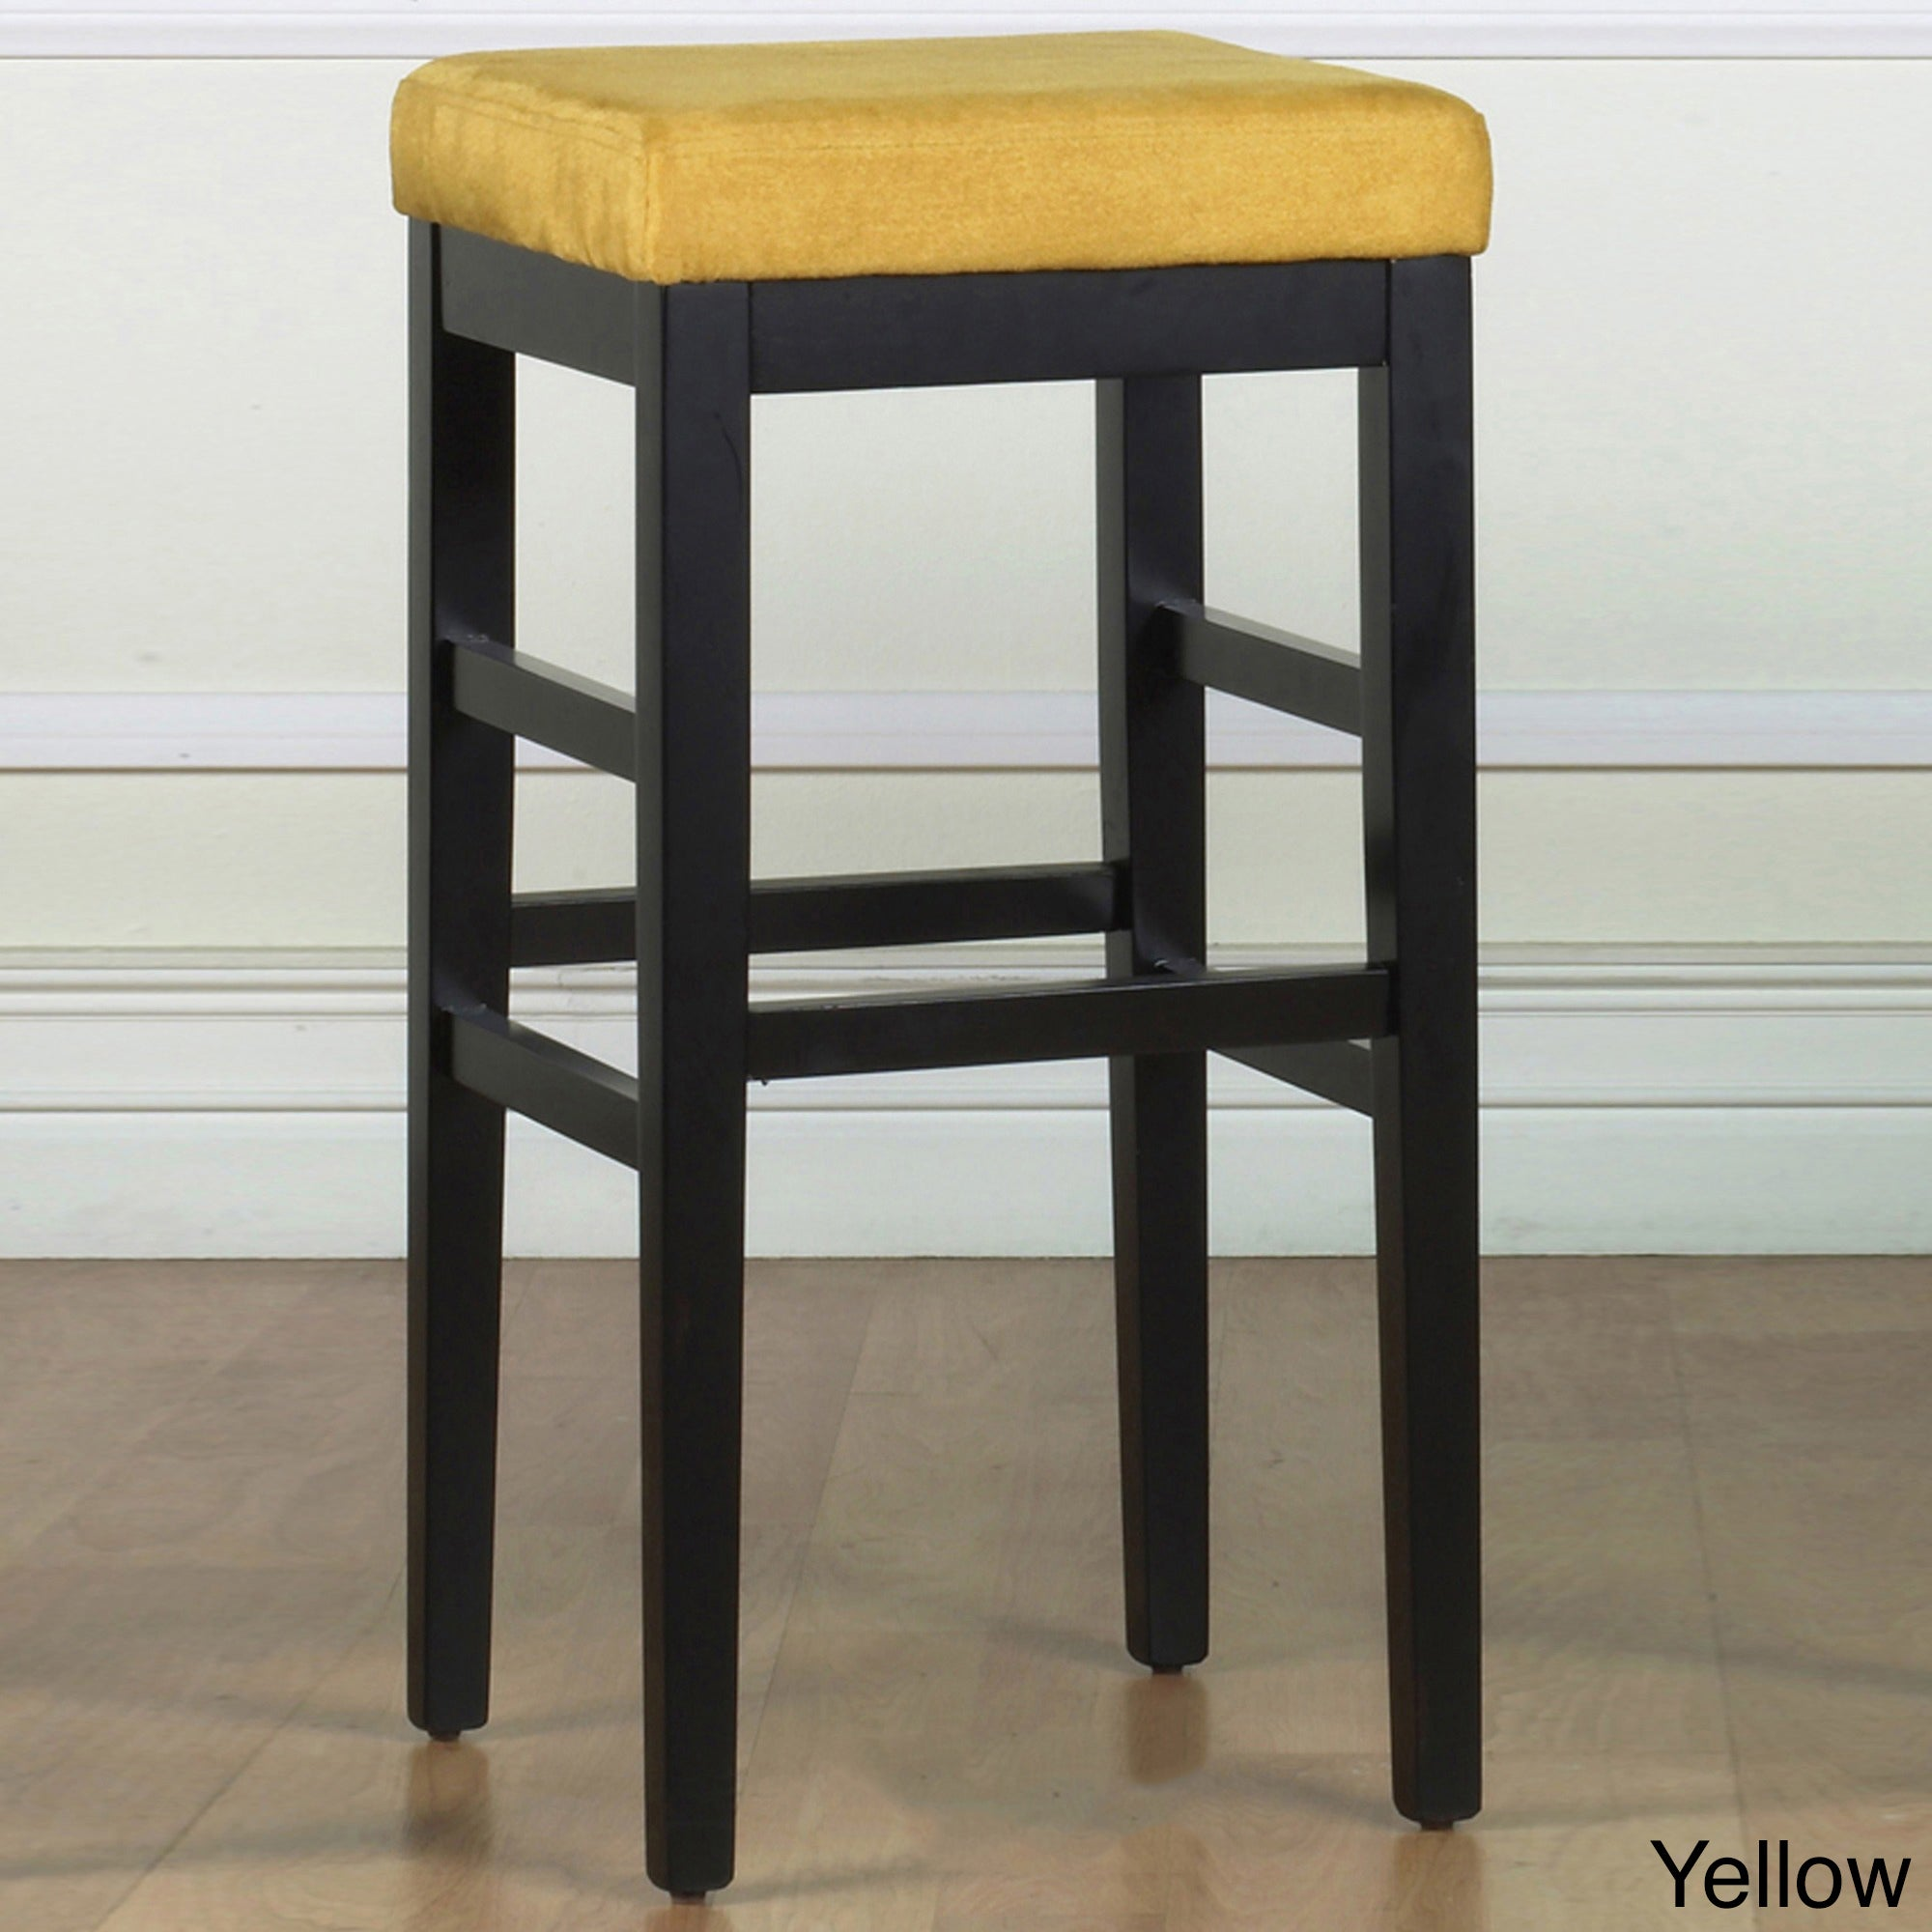 stool stools h one furniture categories kartell please shop square more frei barhocker bar transparent